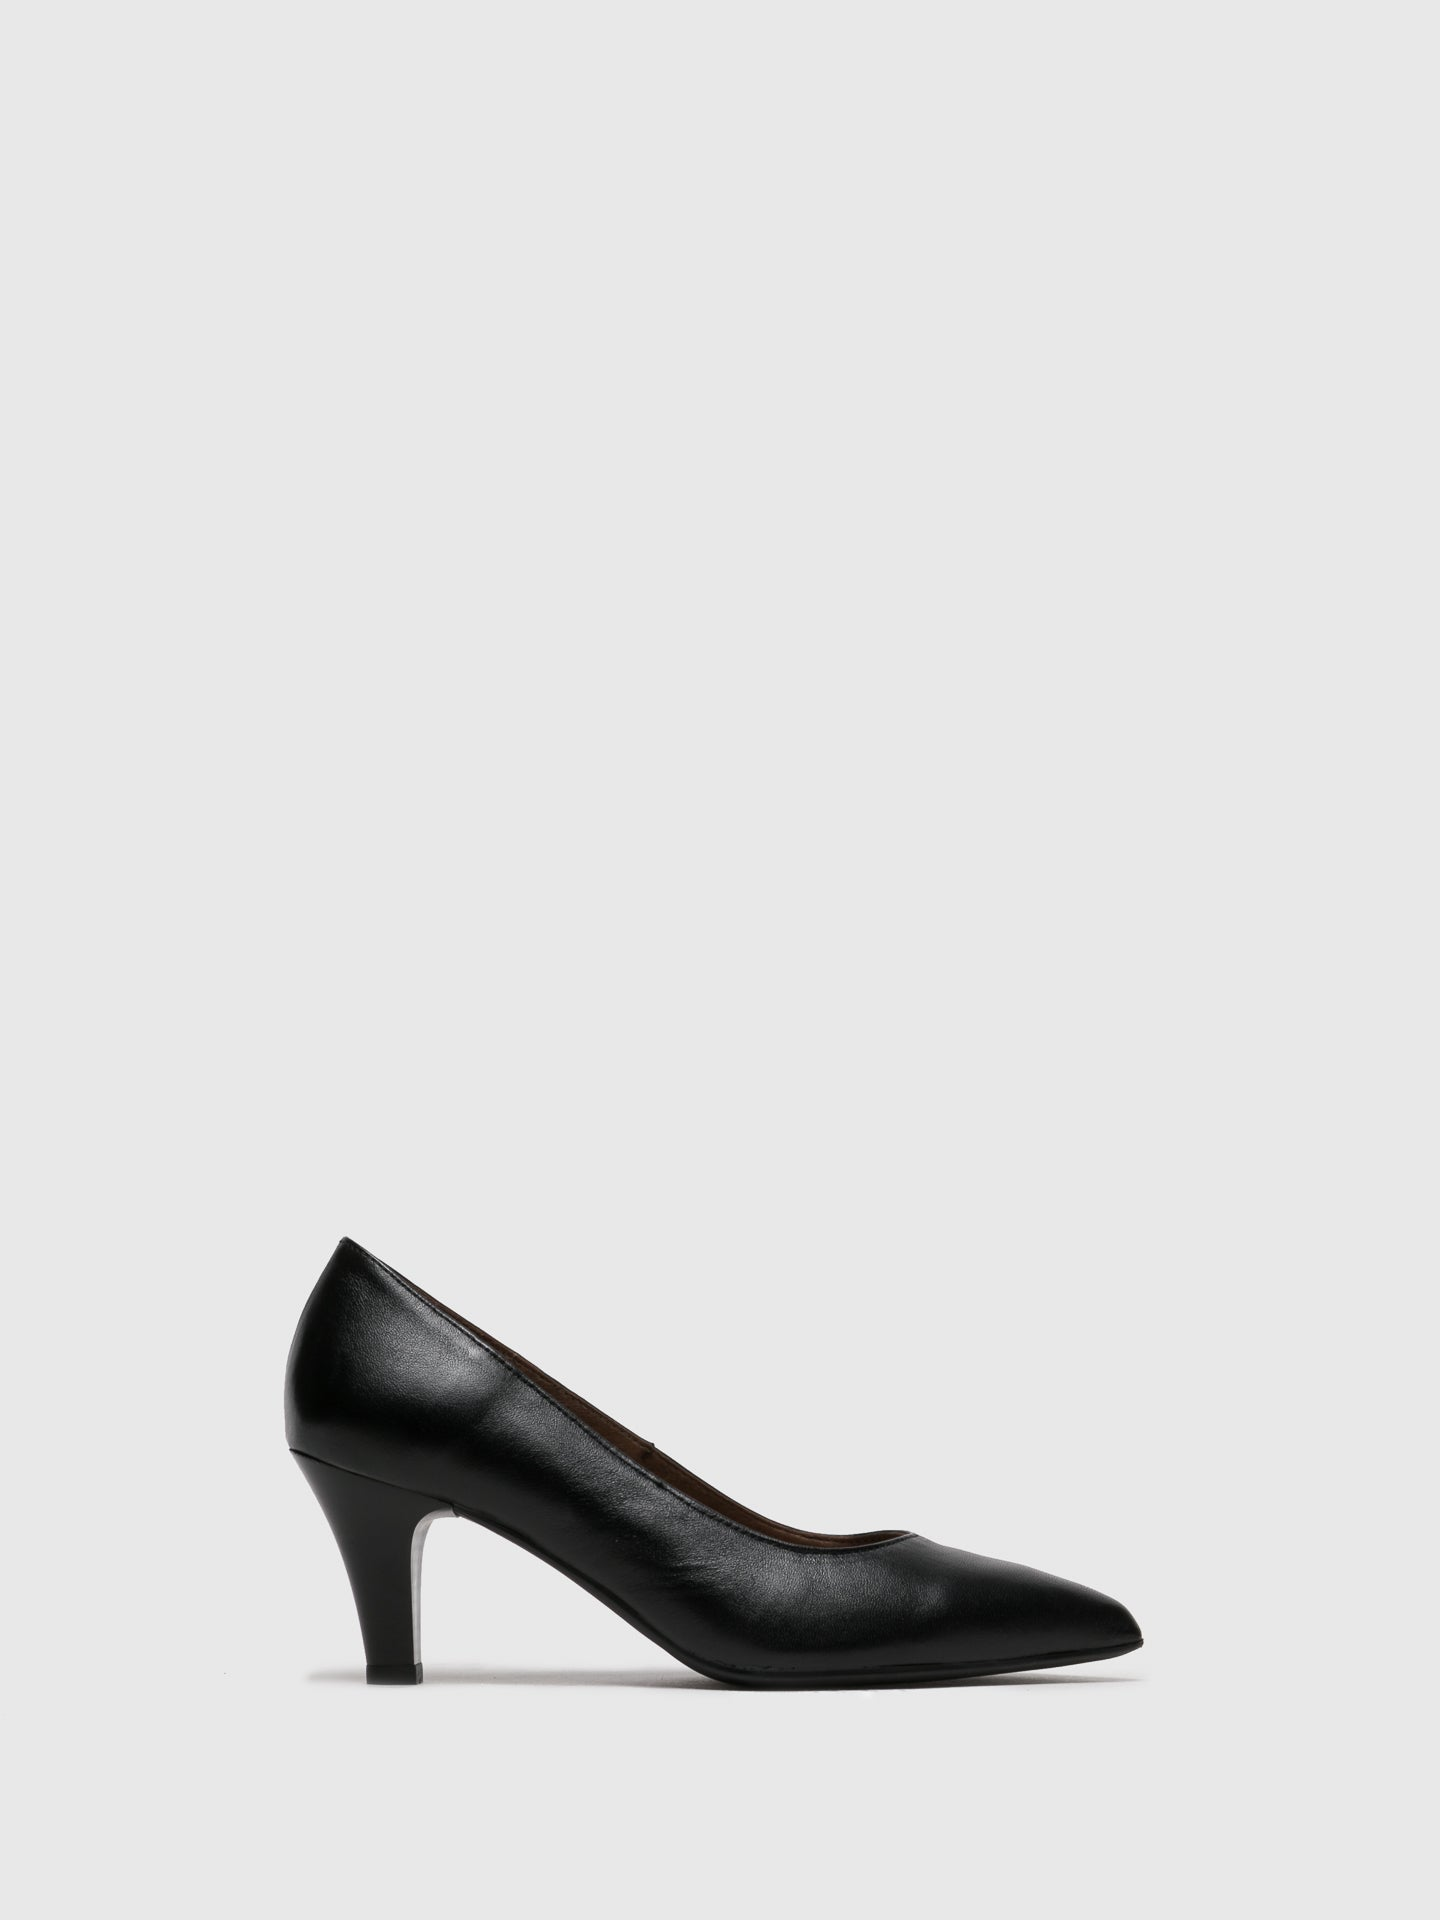 Foreva Black Leather Pointed Toe Pumps